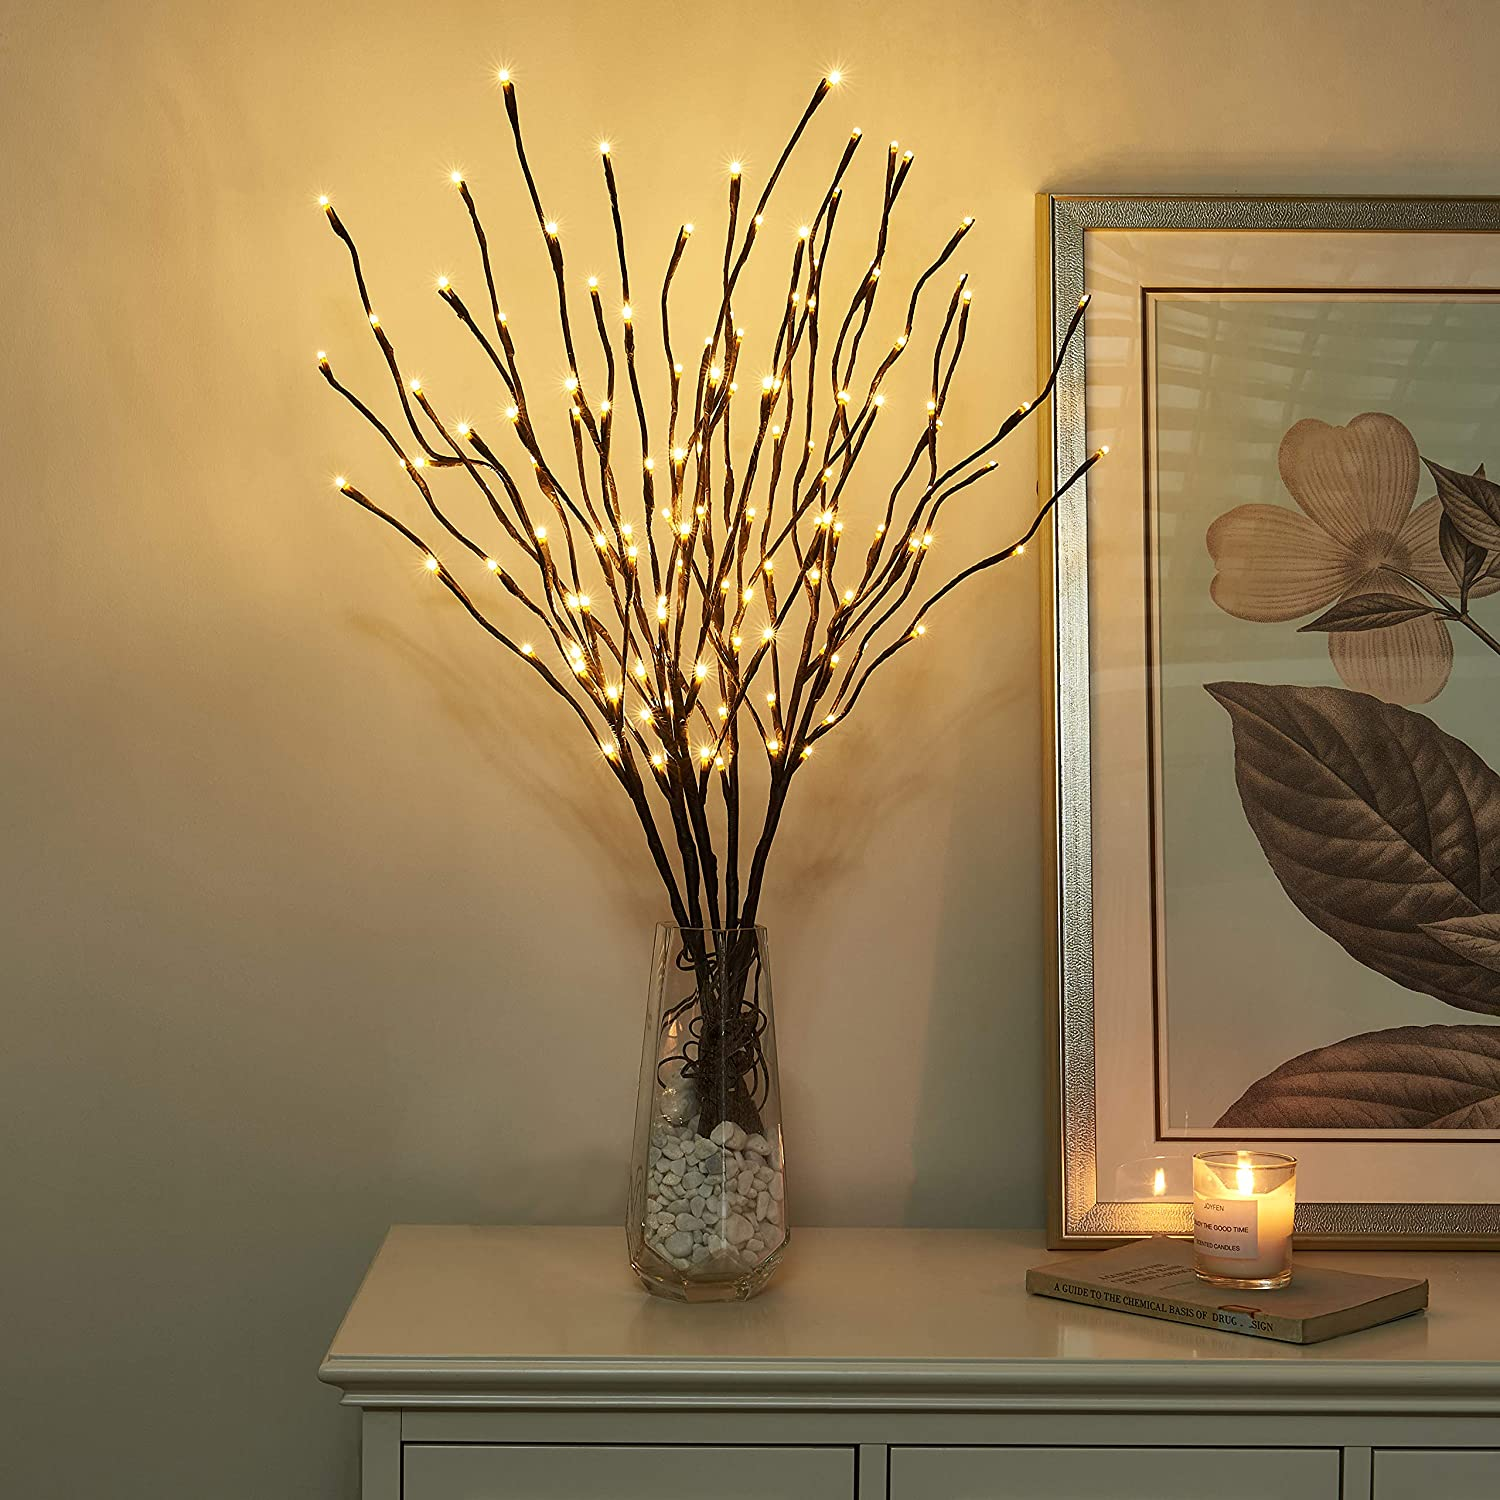 """Vanthylit Set of 2 3PK 30"""" Brown Lighted Twig Stakes 120 Warm White LED for Outdoor and Indoor (Vase Excluded)"""